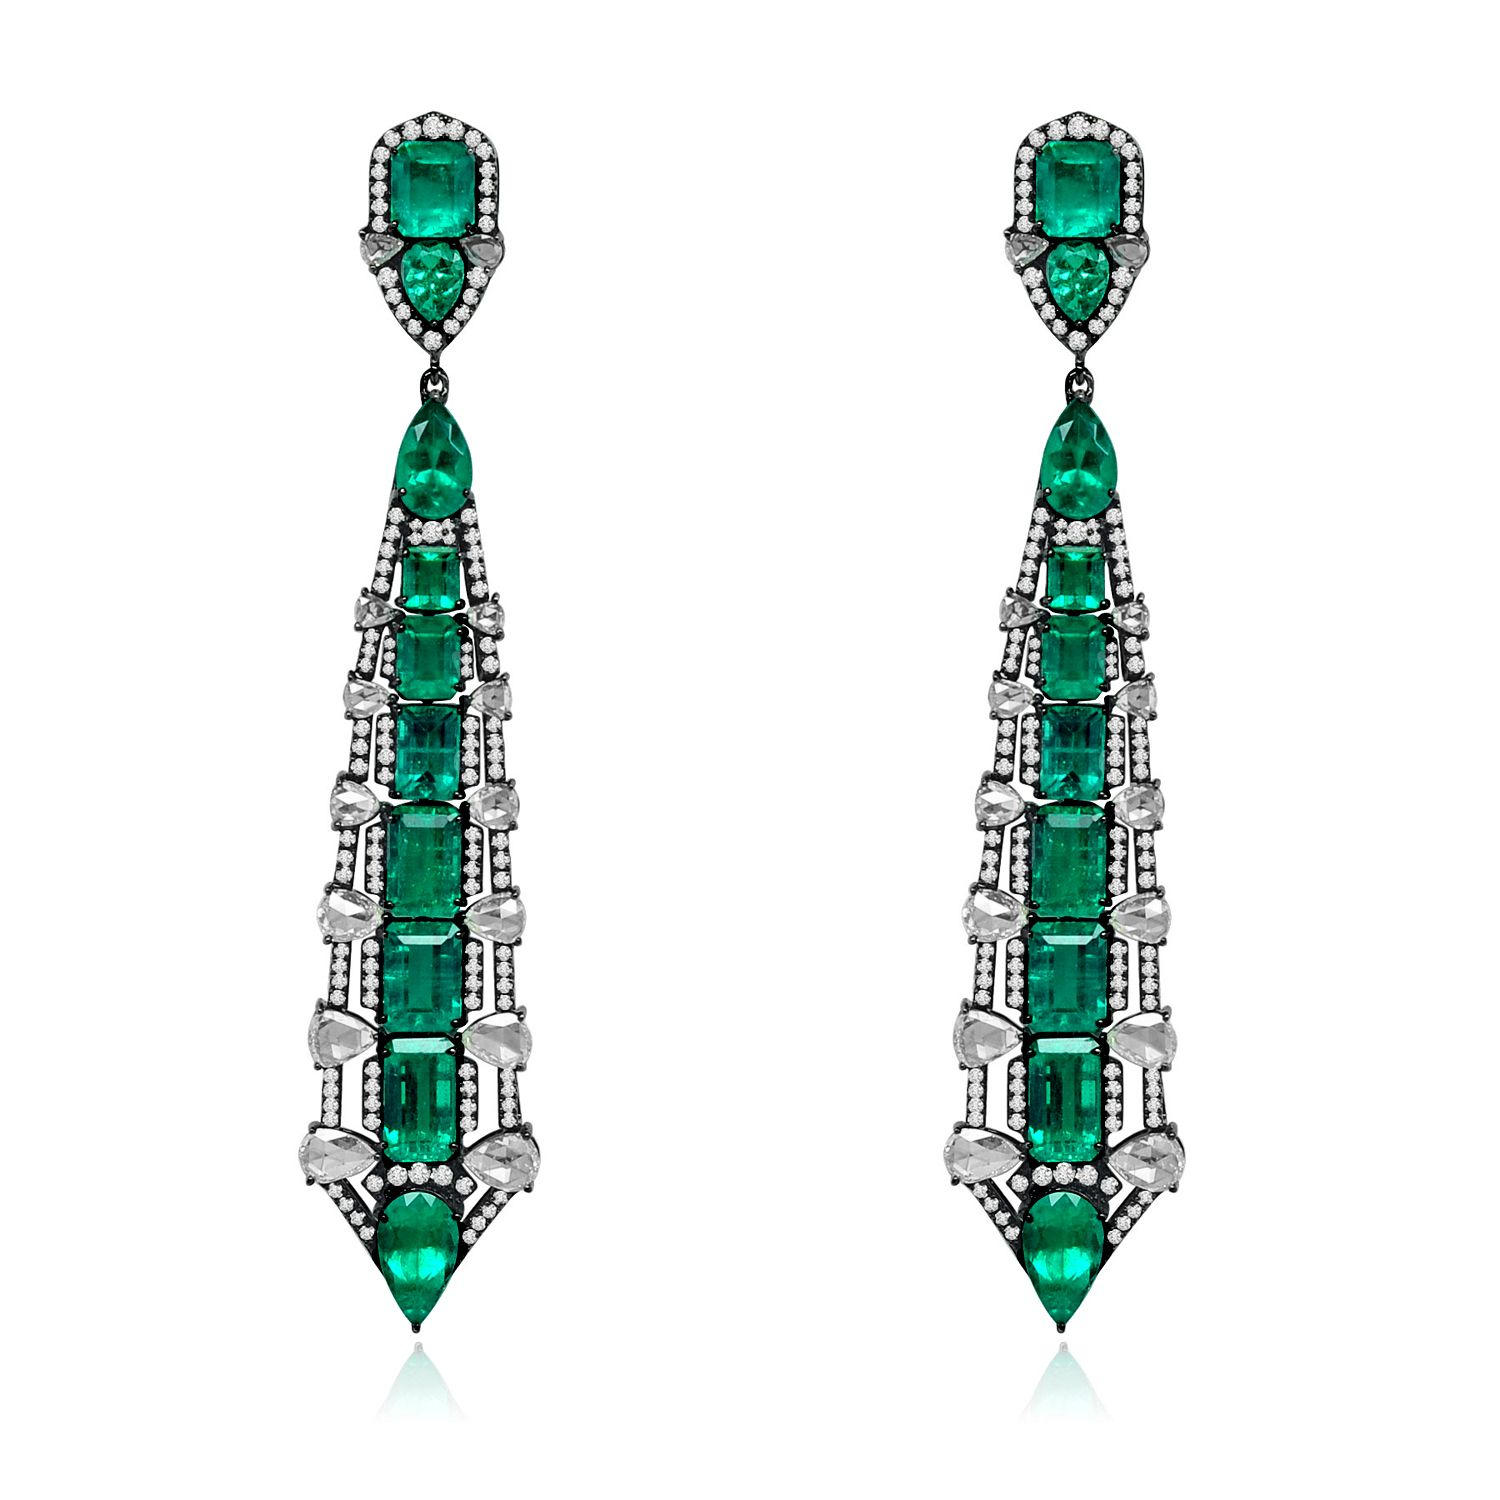 Emerald And Diamond Earrings Sutra mrDLEfSJe